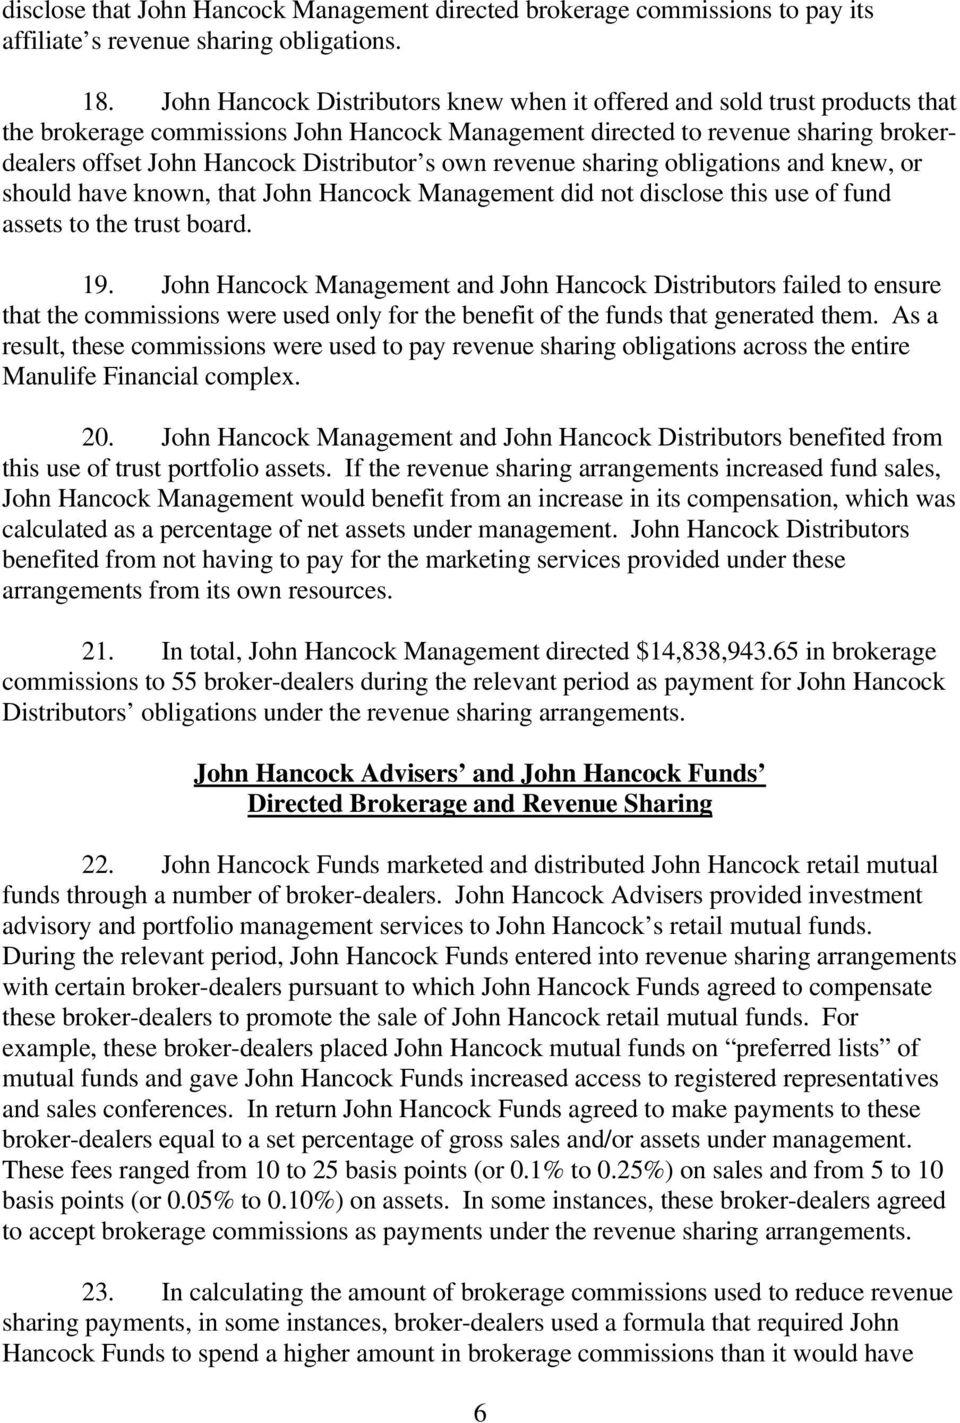 s own revenue sharing obligations and knew, or should have known, that John Hancock Management did not disclose this use of fund assets to the trust board. 19.